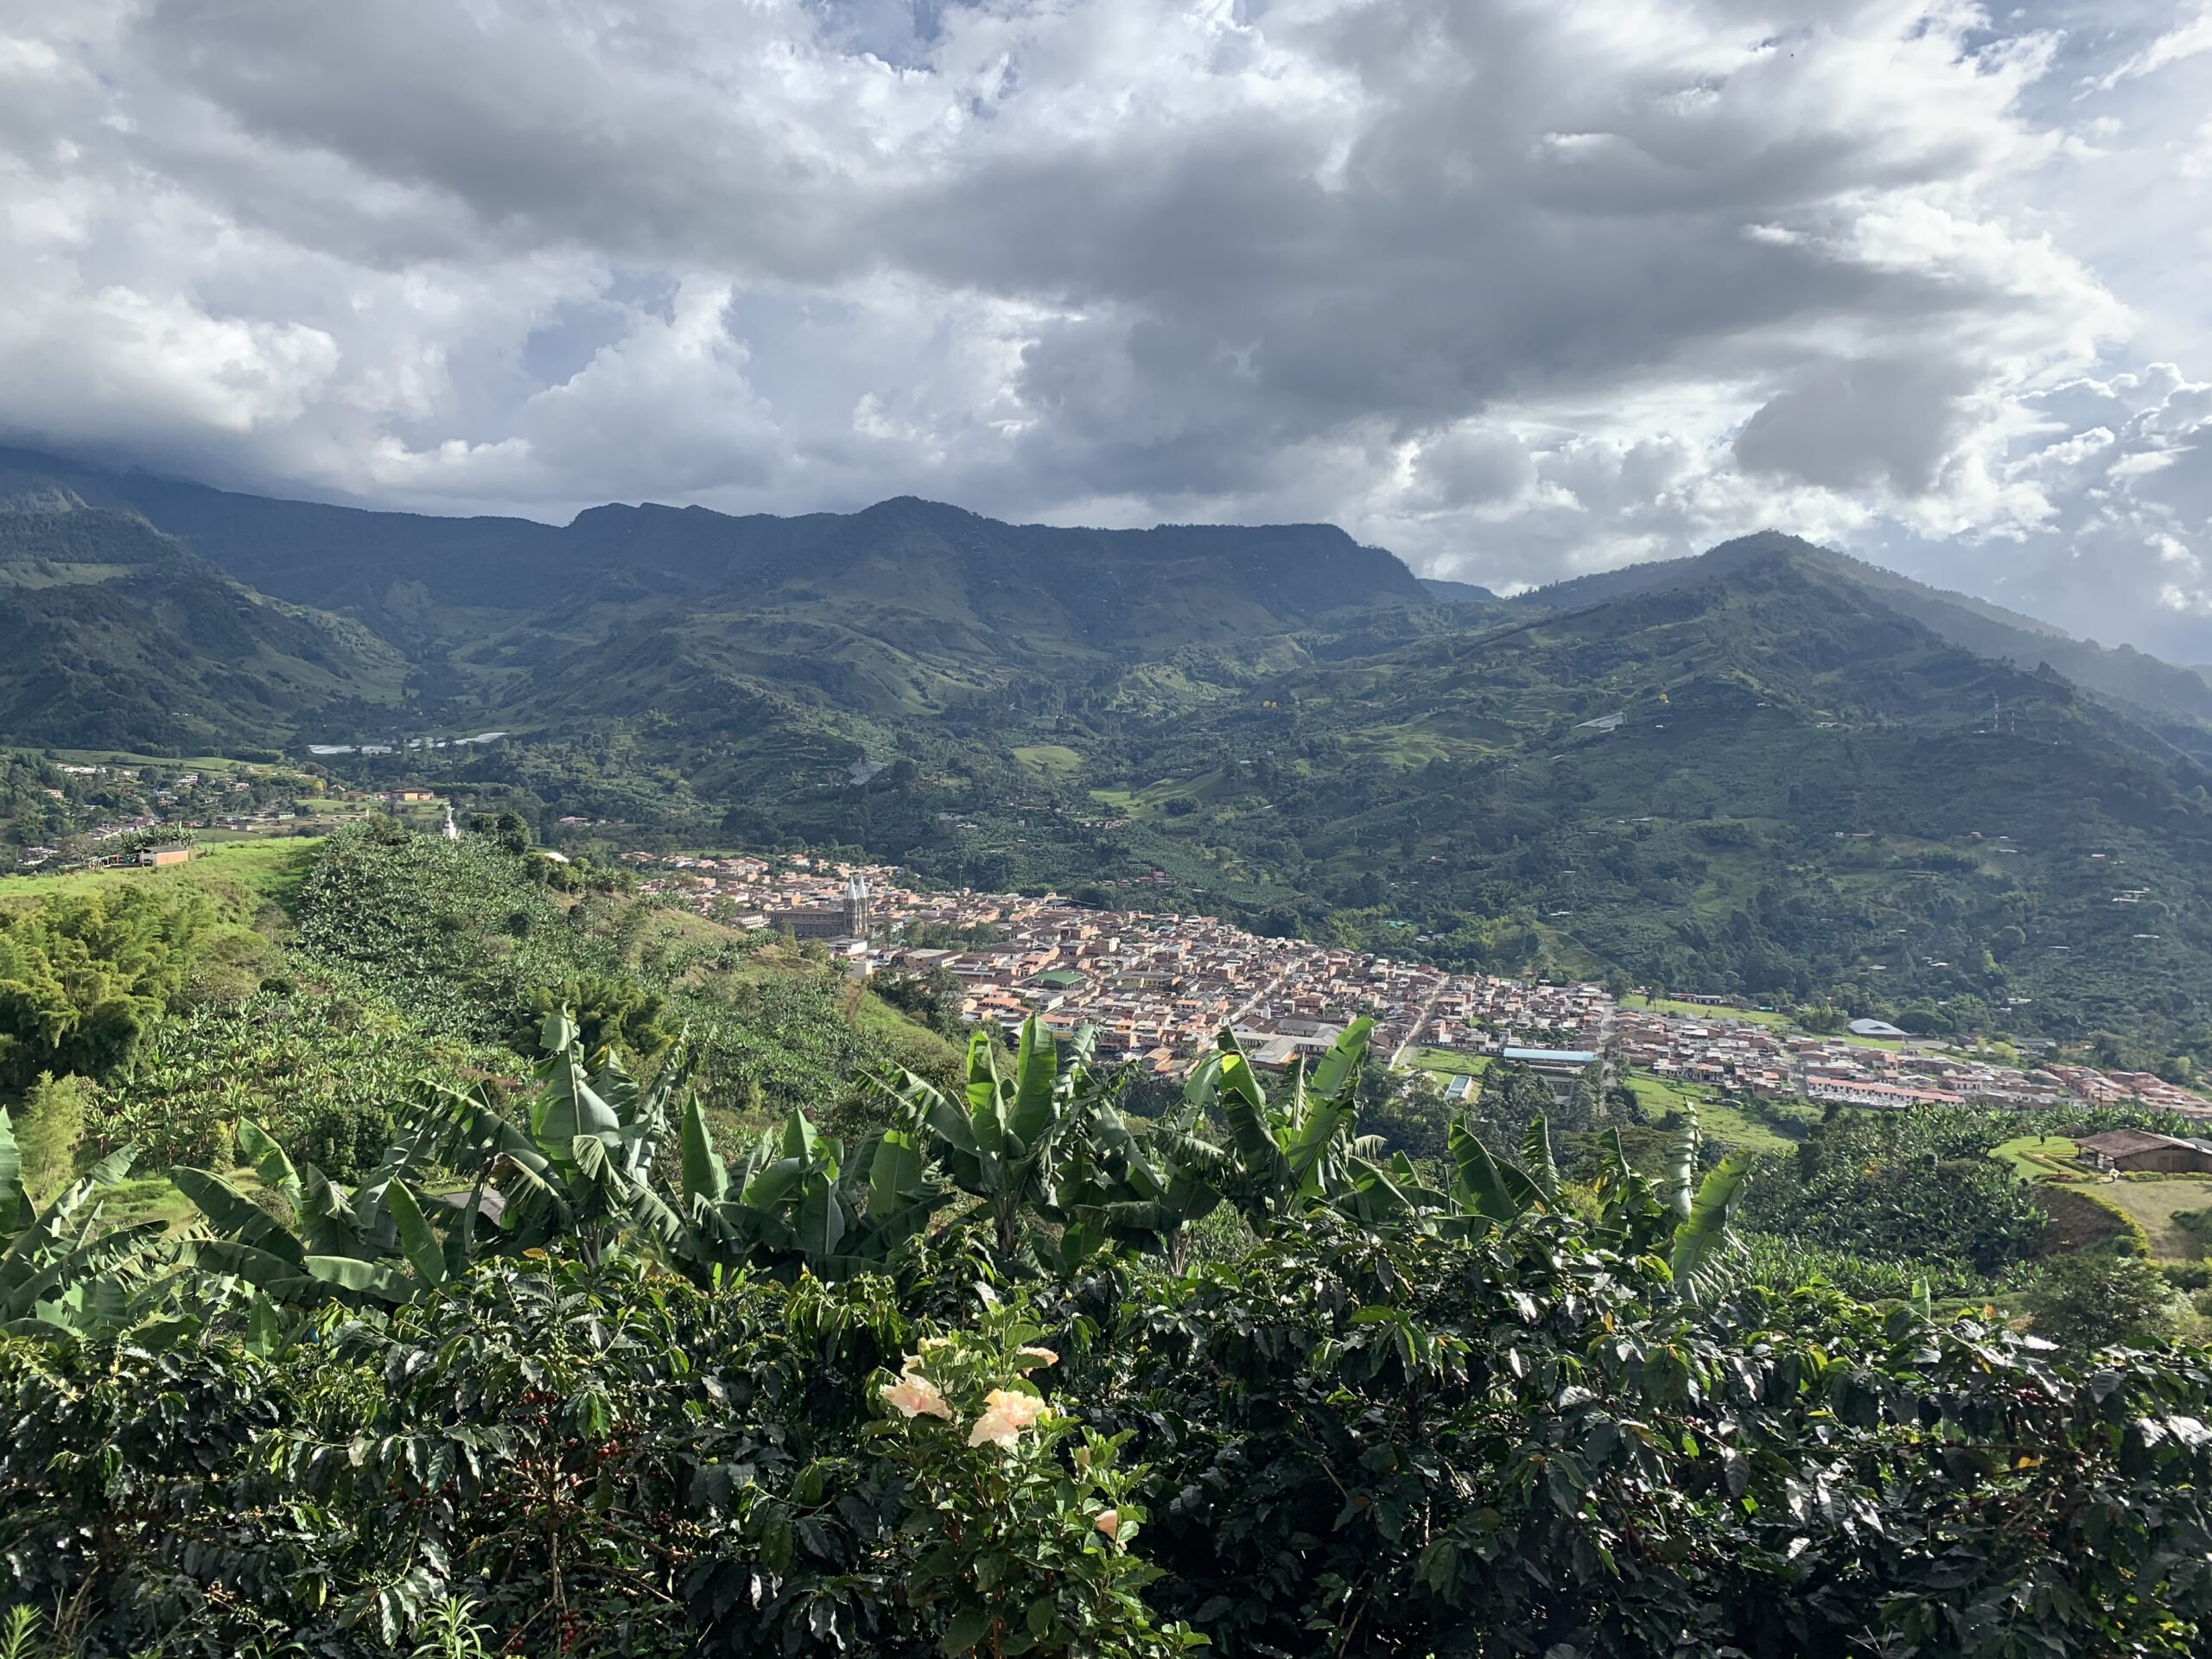 The town of Jardin Antioquia, Colombia from the Cristo Rey